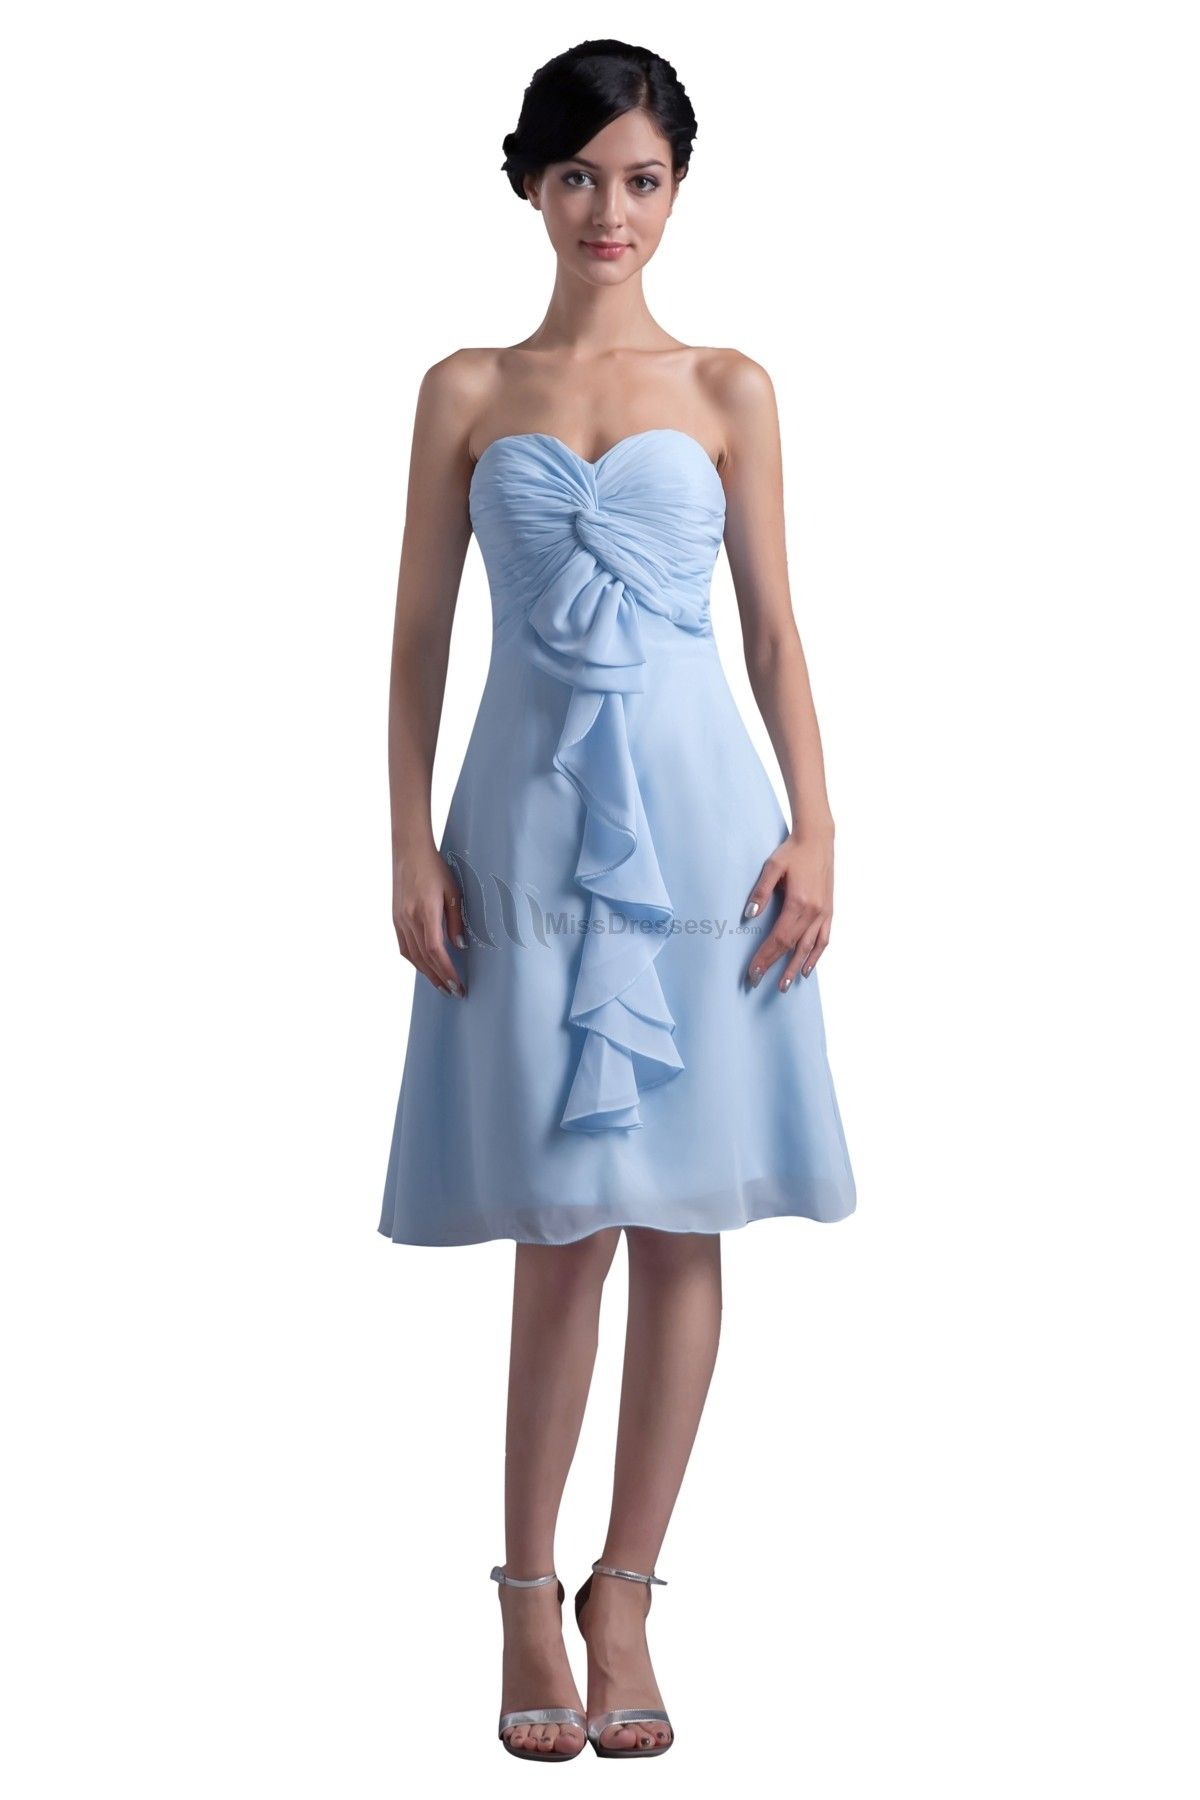 Buy cheap chiffon bridesmaid dressunder 100 beautiful simple buy cheap chiffon bridesmaid dressunder 100 beautiful simple sweetheart short blue bridesmaid dresses plus size ombrellifo Image collections